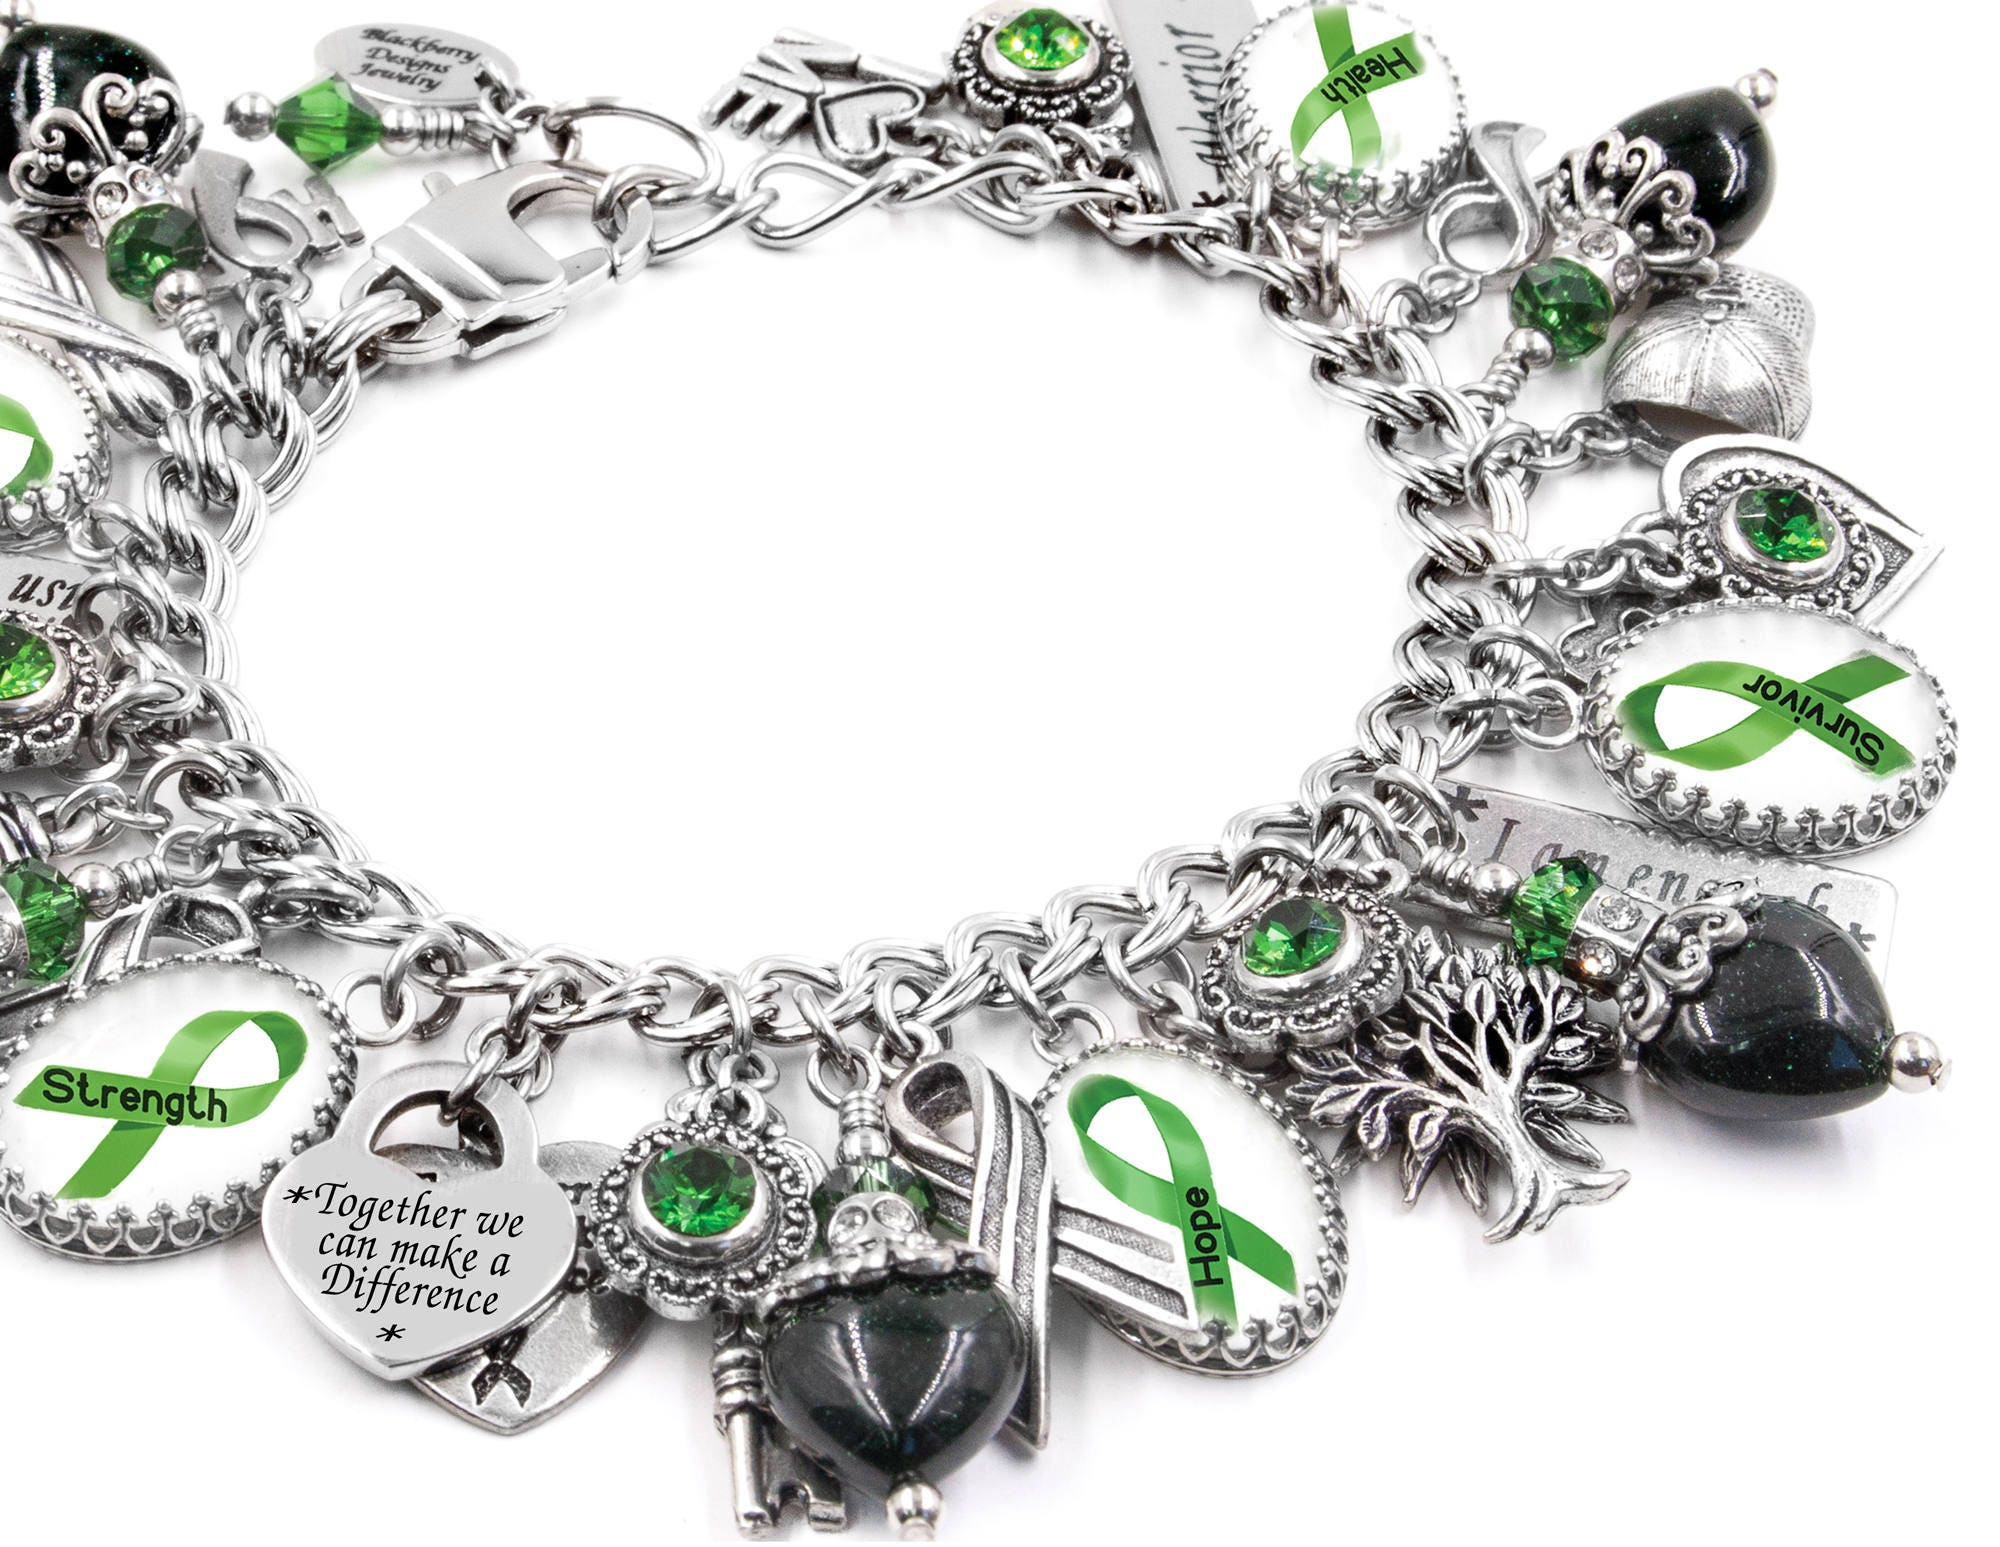 awareness currency baby loss wave pages ocd with feed silver ring product bracelet